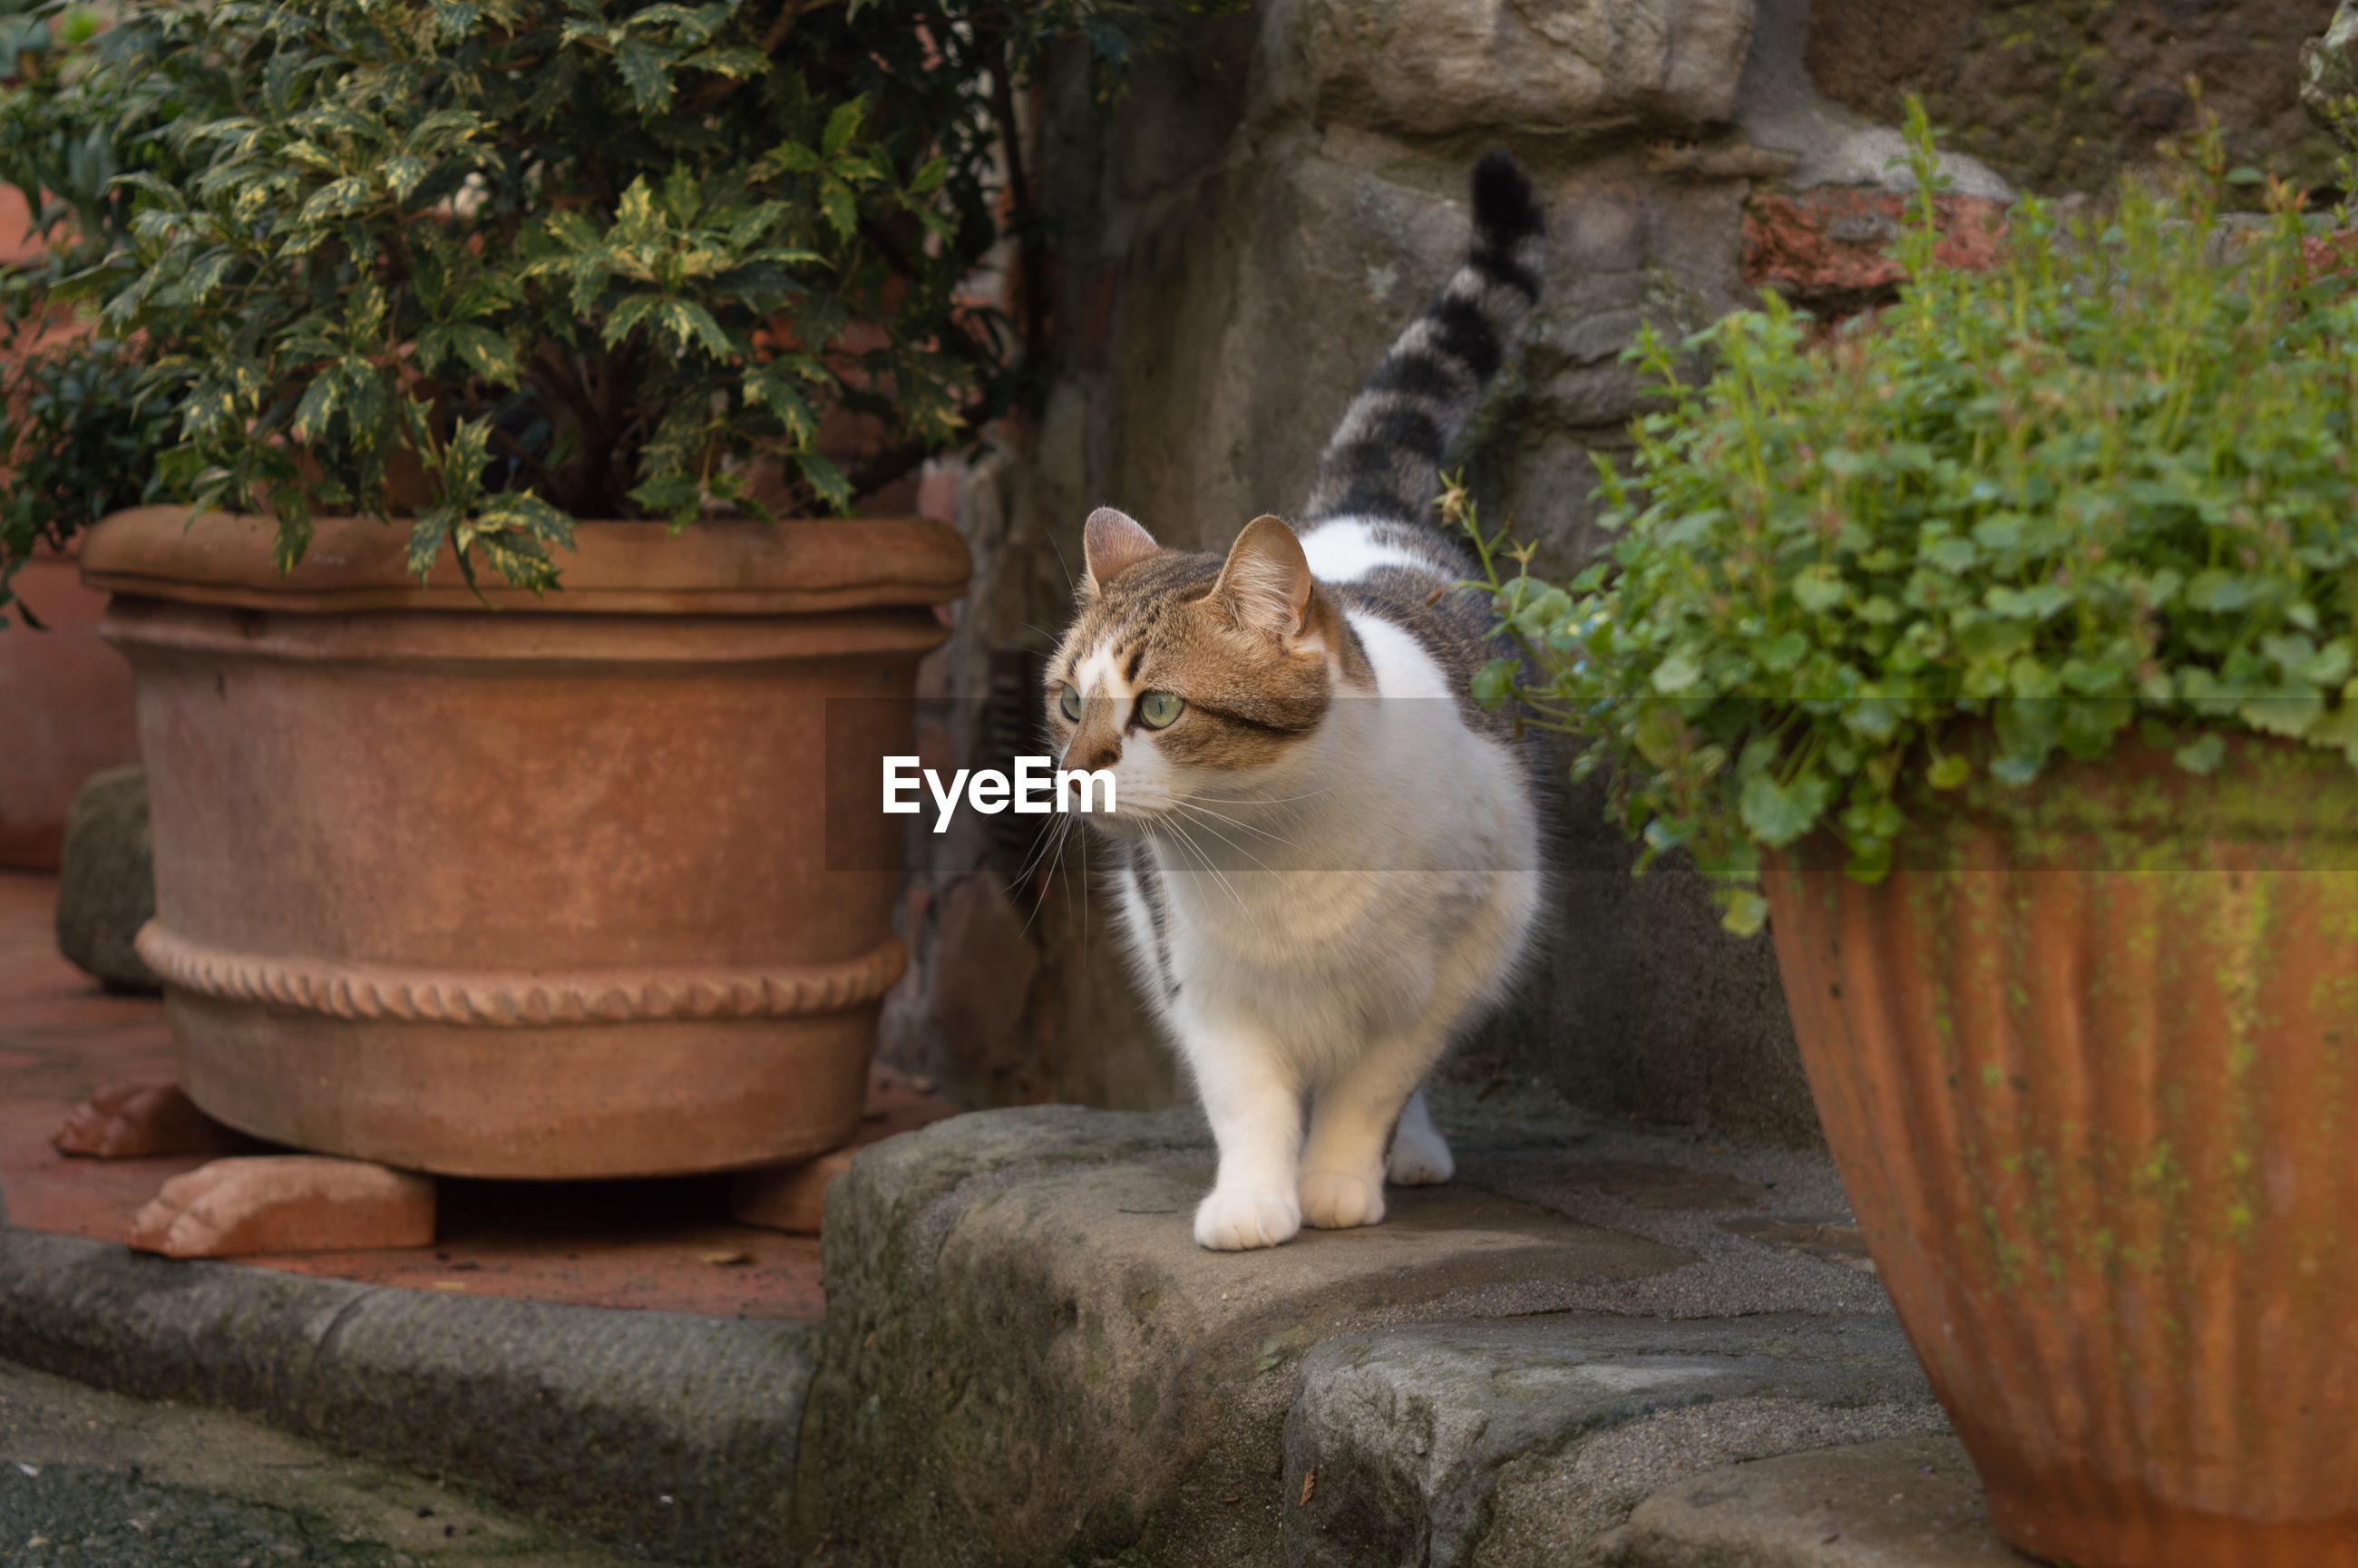 CAT SITTING BY POTTED PLANT IN BACKYARD